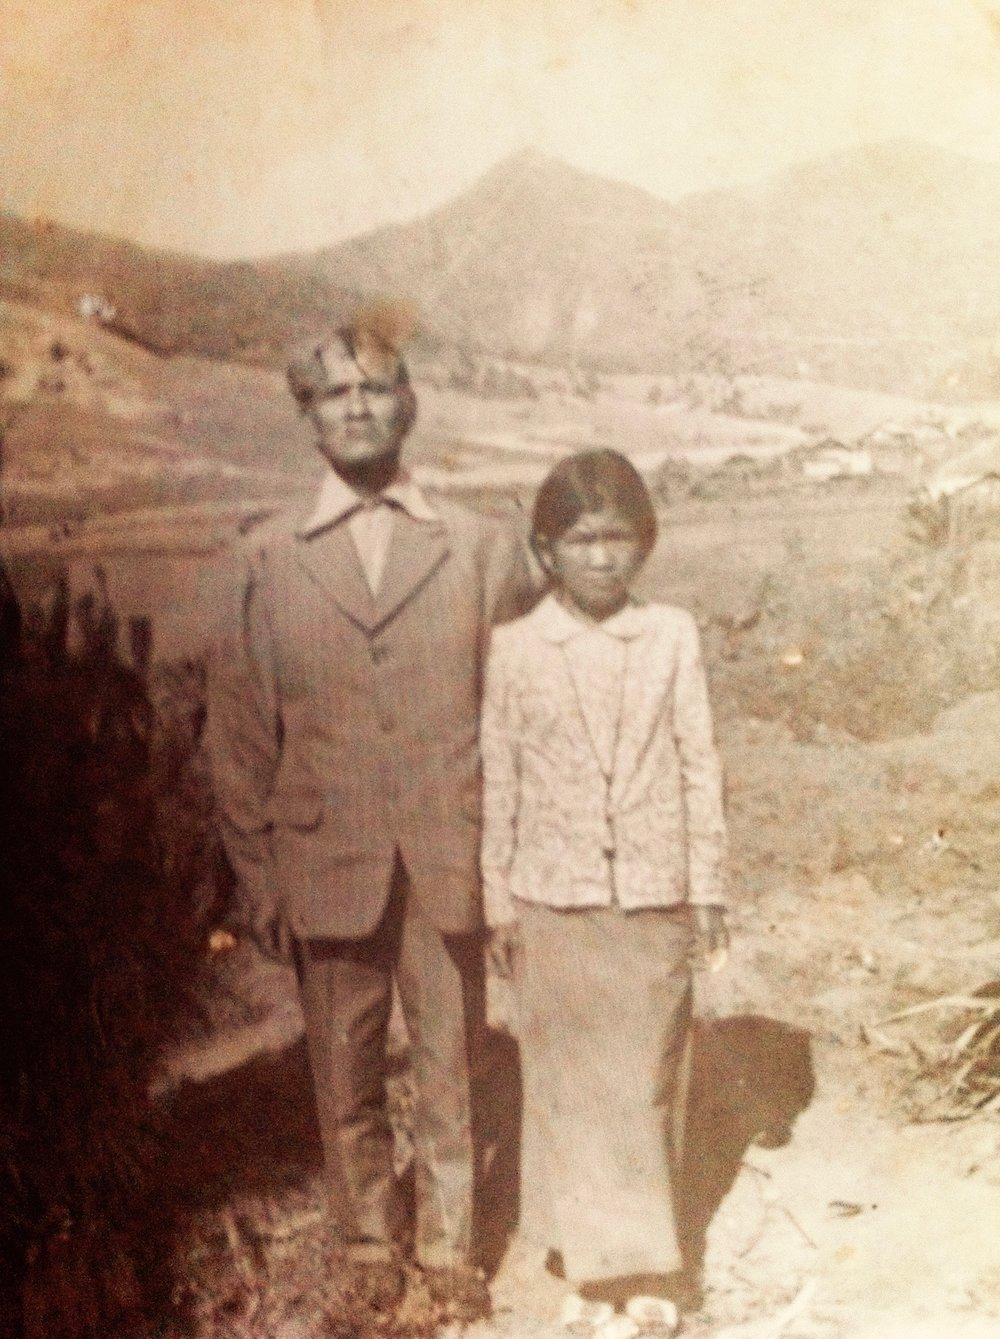 1955 - Photo from 1955of Mr. Brai and Mrs.Co Lieng at their family coffee farm in Bonneur' C Village at the base of Lang Biang Mountain.